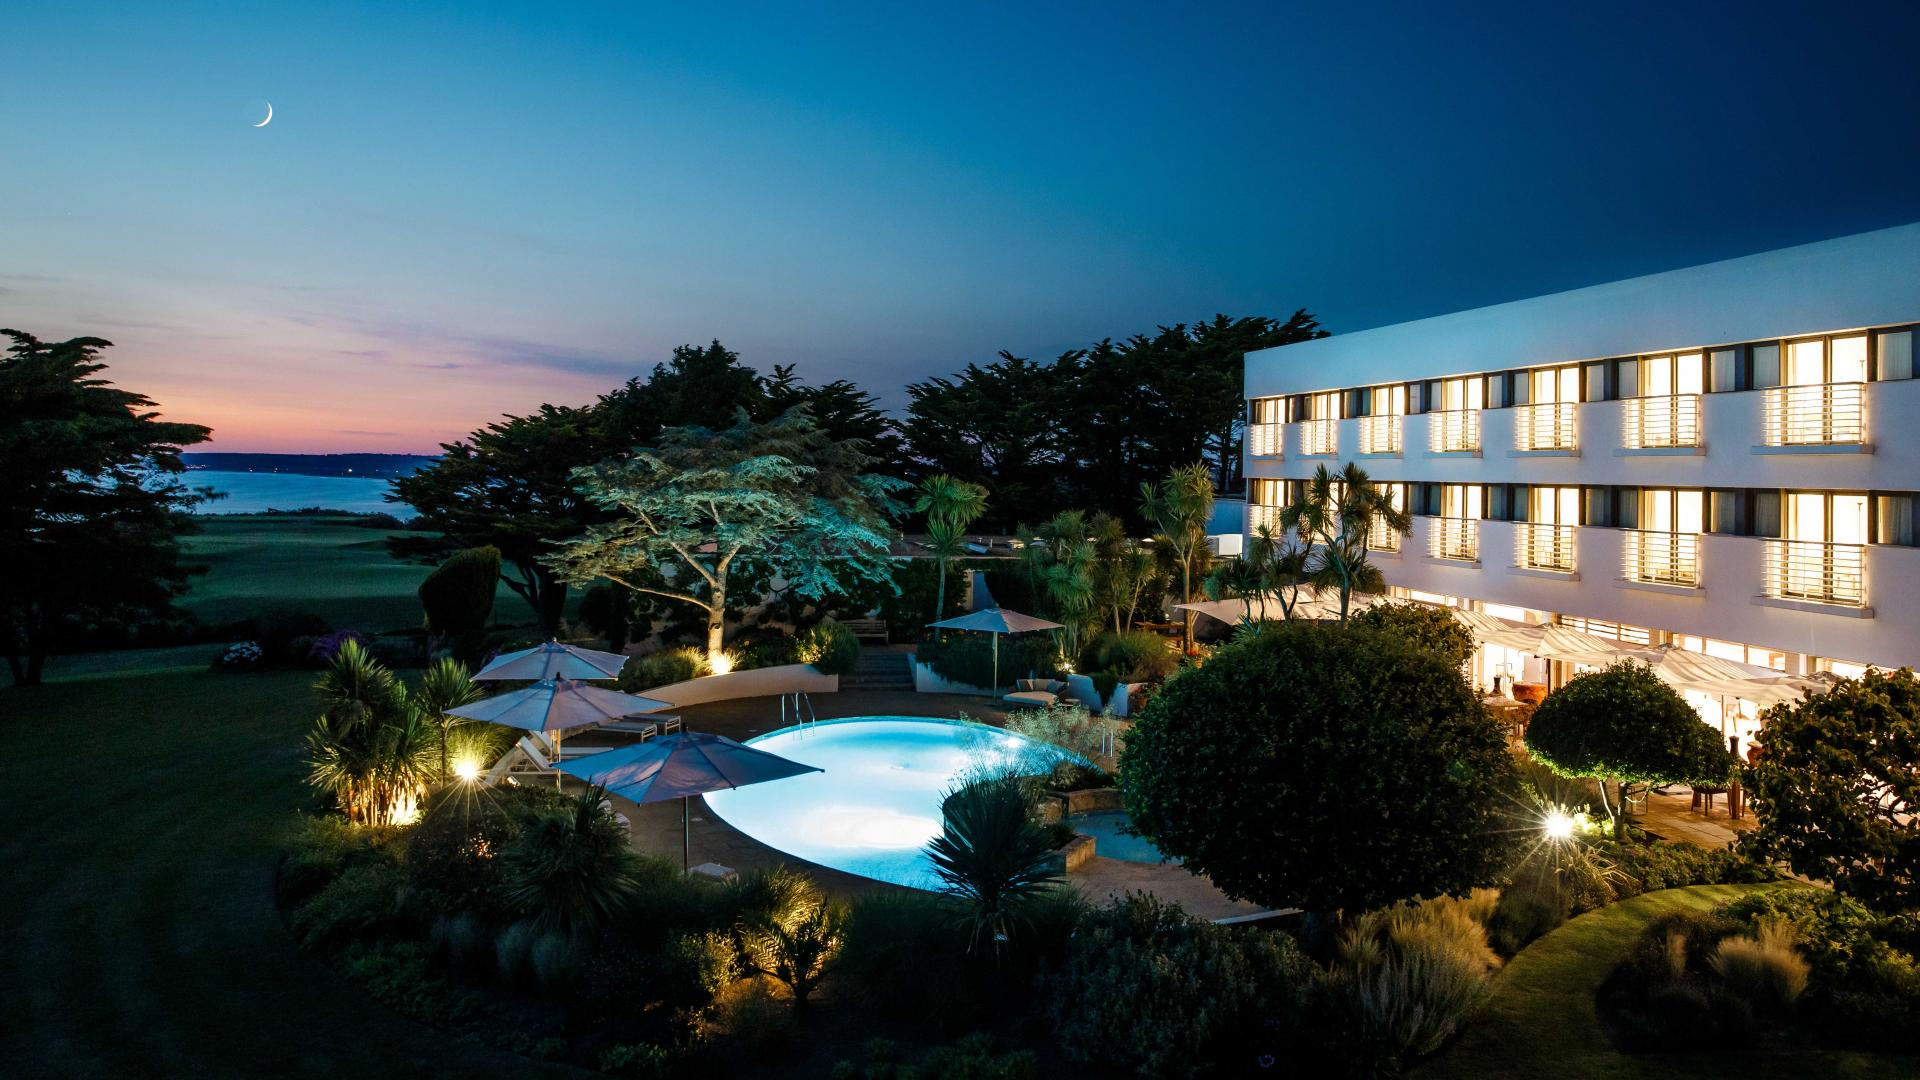 Things to do in Jersey: The Atlantic Hotel